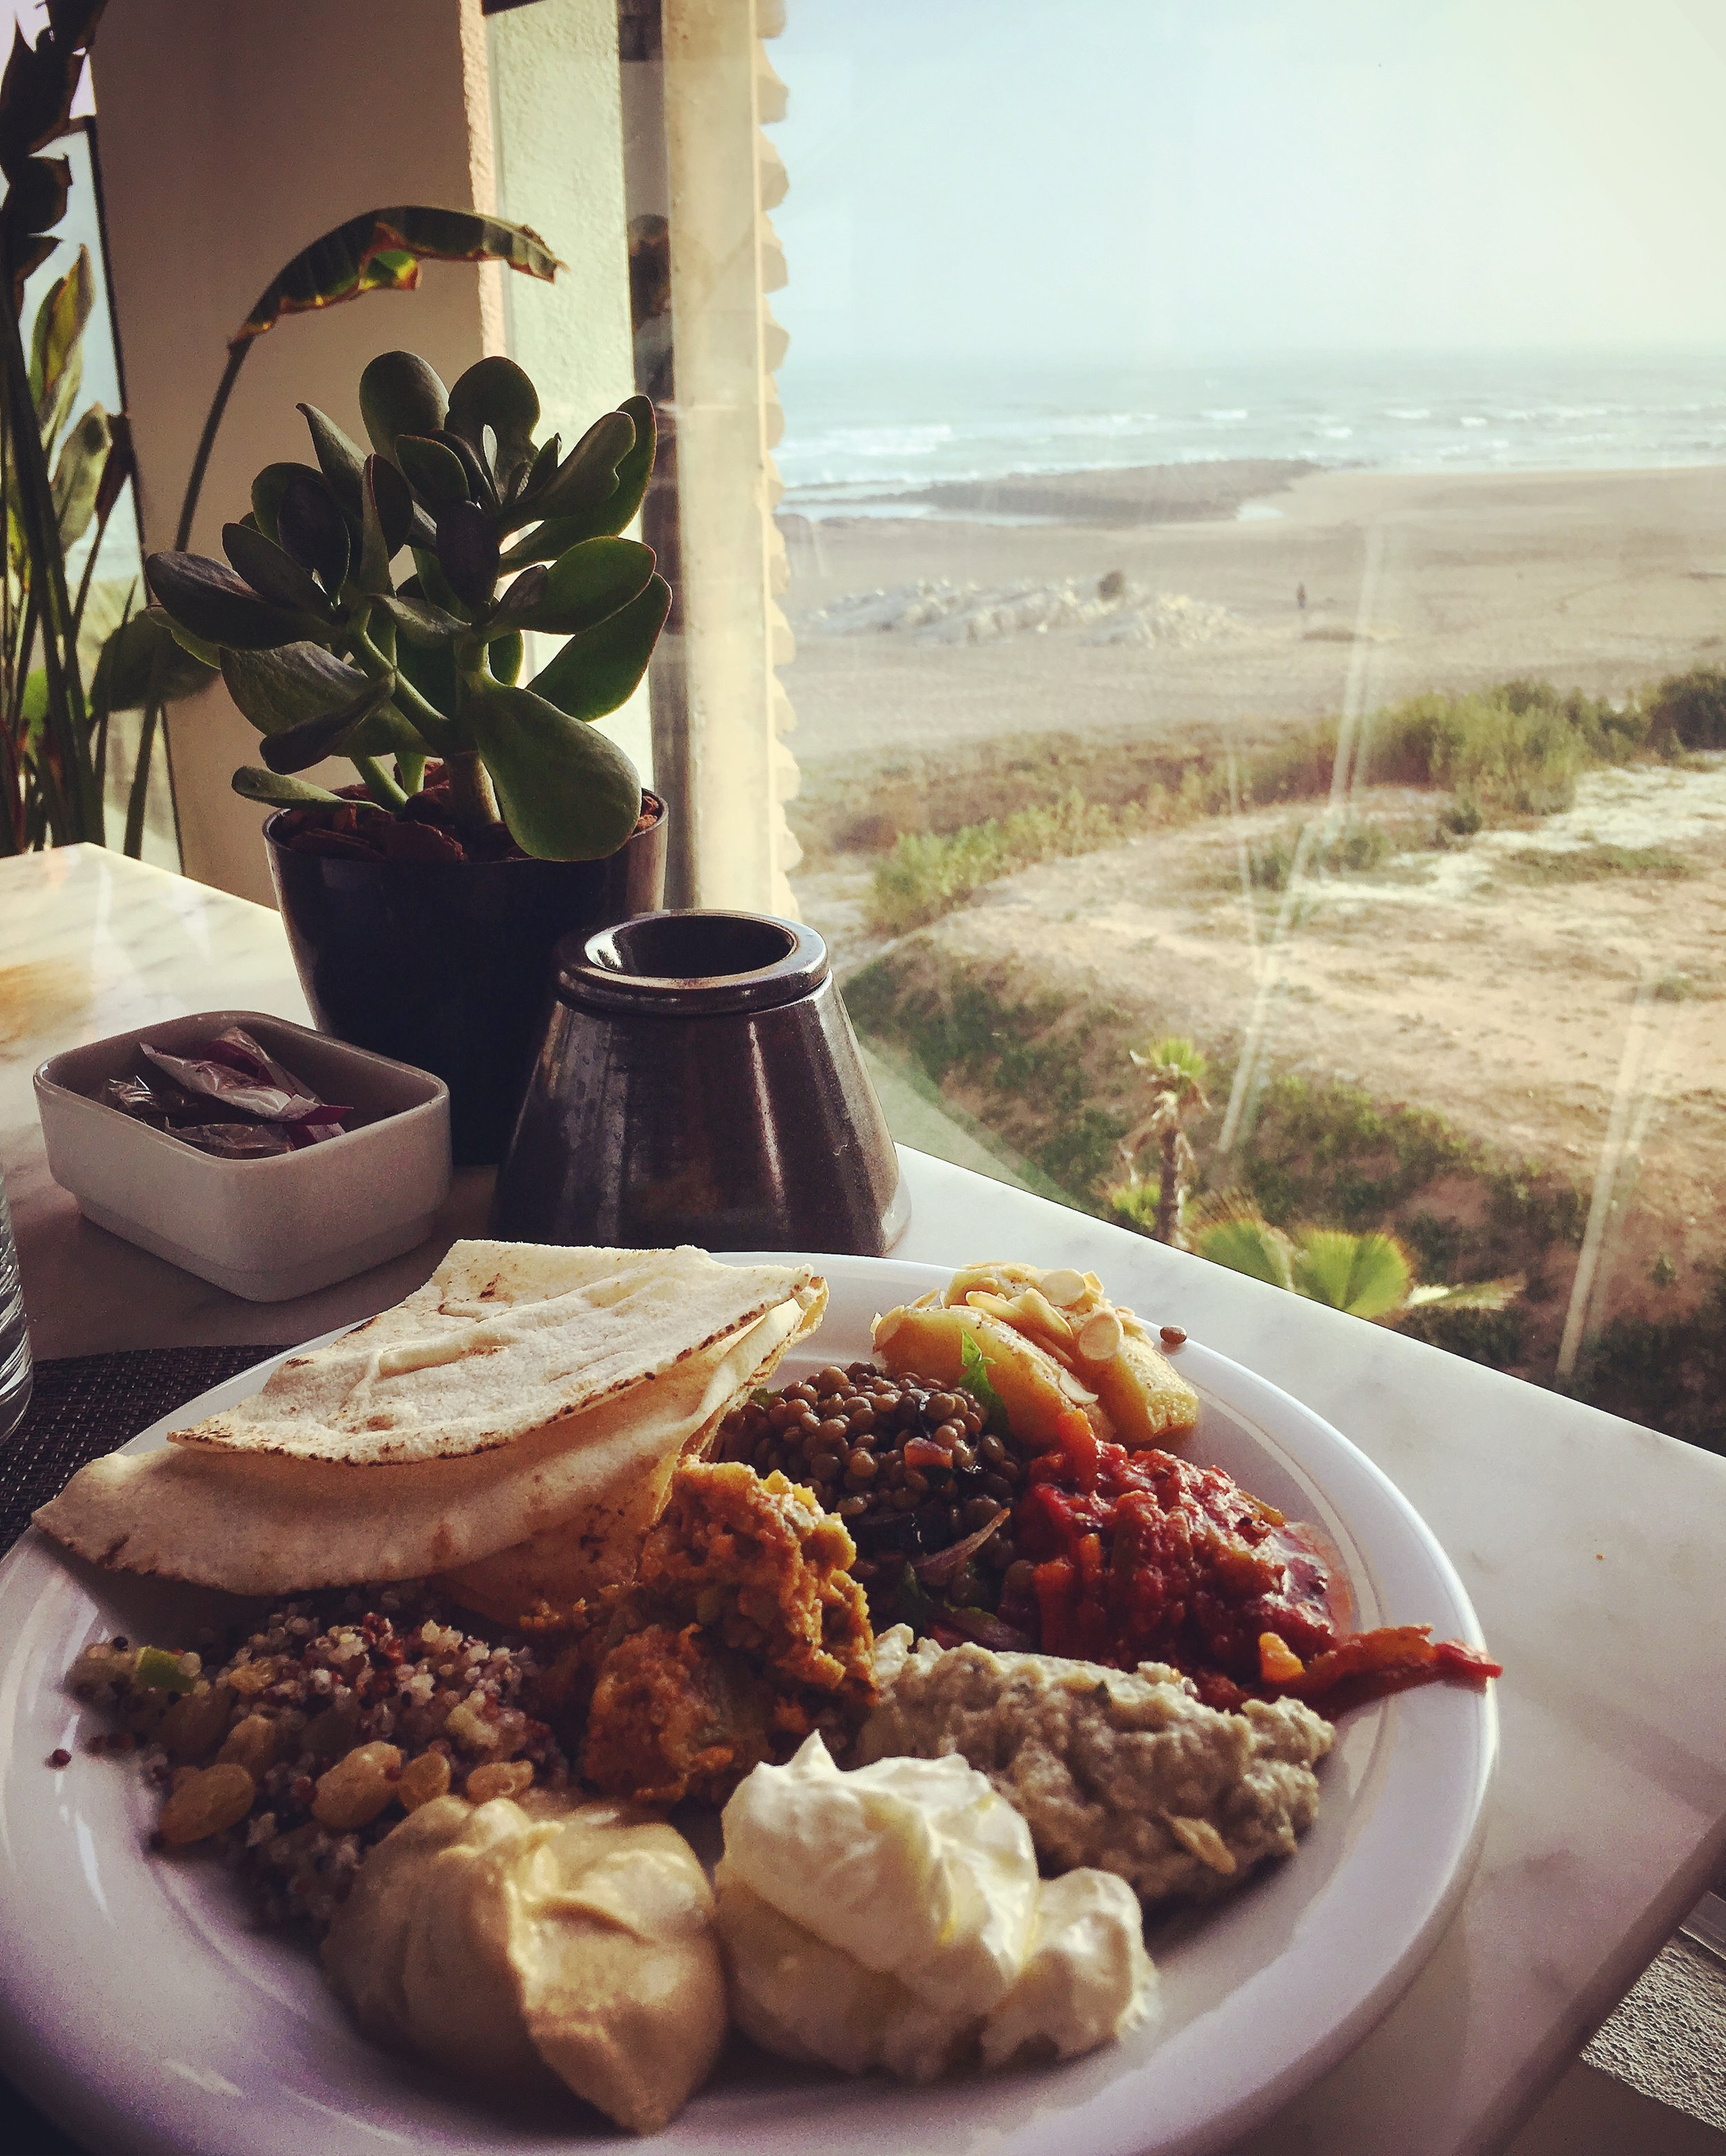 Moroccan breakfast buffets are never short on delicious treats. This brekkie is coupled with a breathtaking view of the Atlantic Coast at the Four Seasons Casablanca.